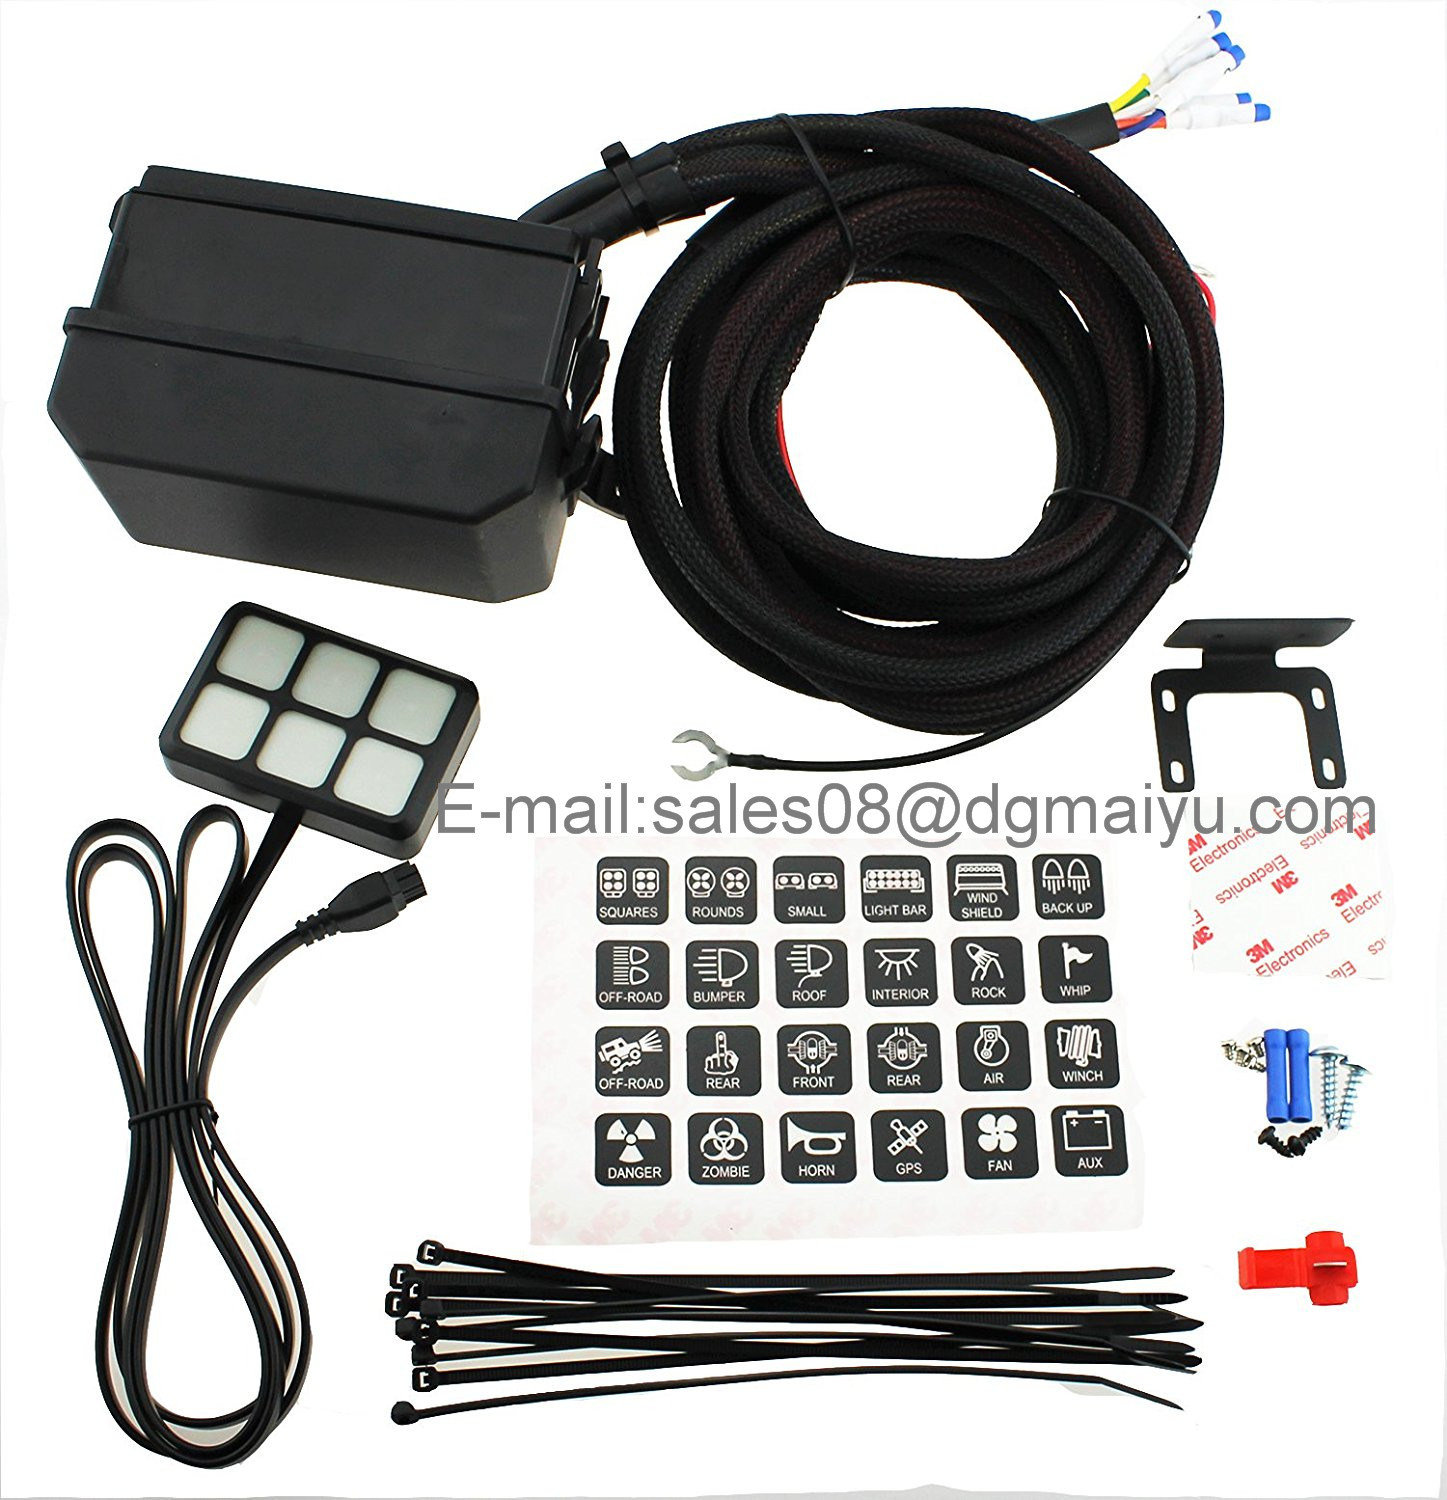 Astonishing China Dc 12V Switch Relay Control Panel With Wiring Kit Universal Wiring Cloud Oideiuggs Outletorg